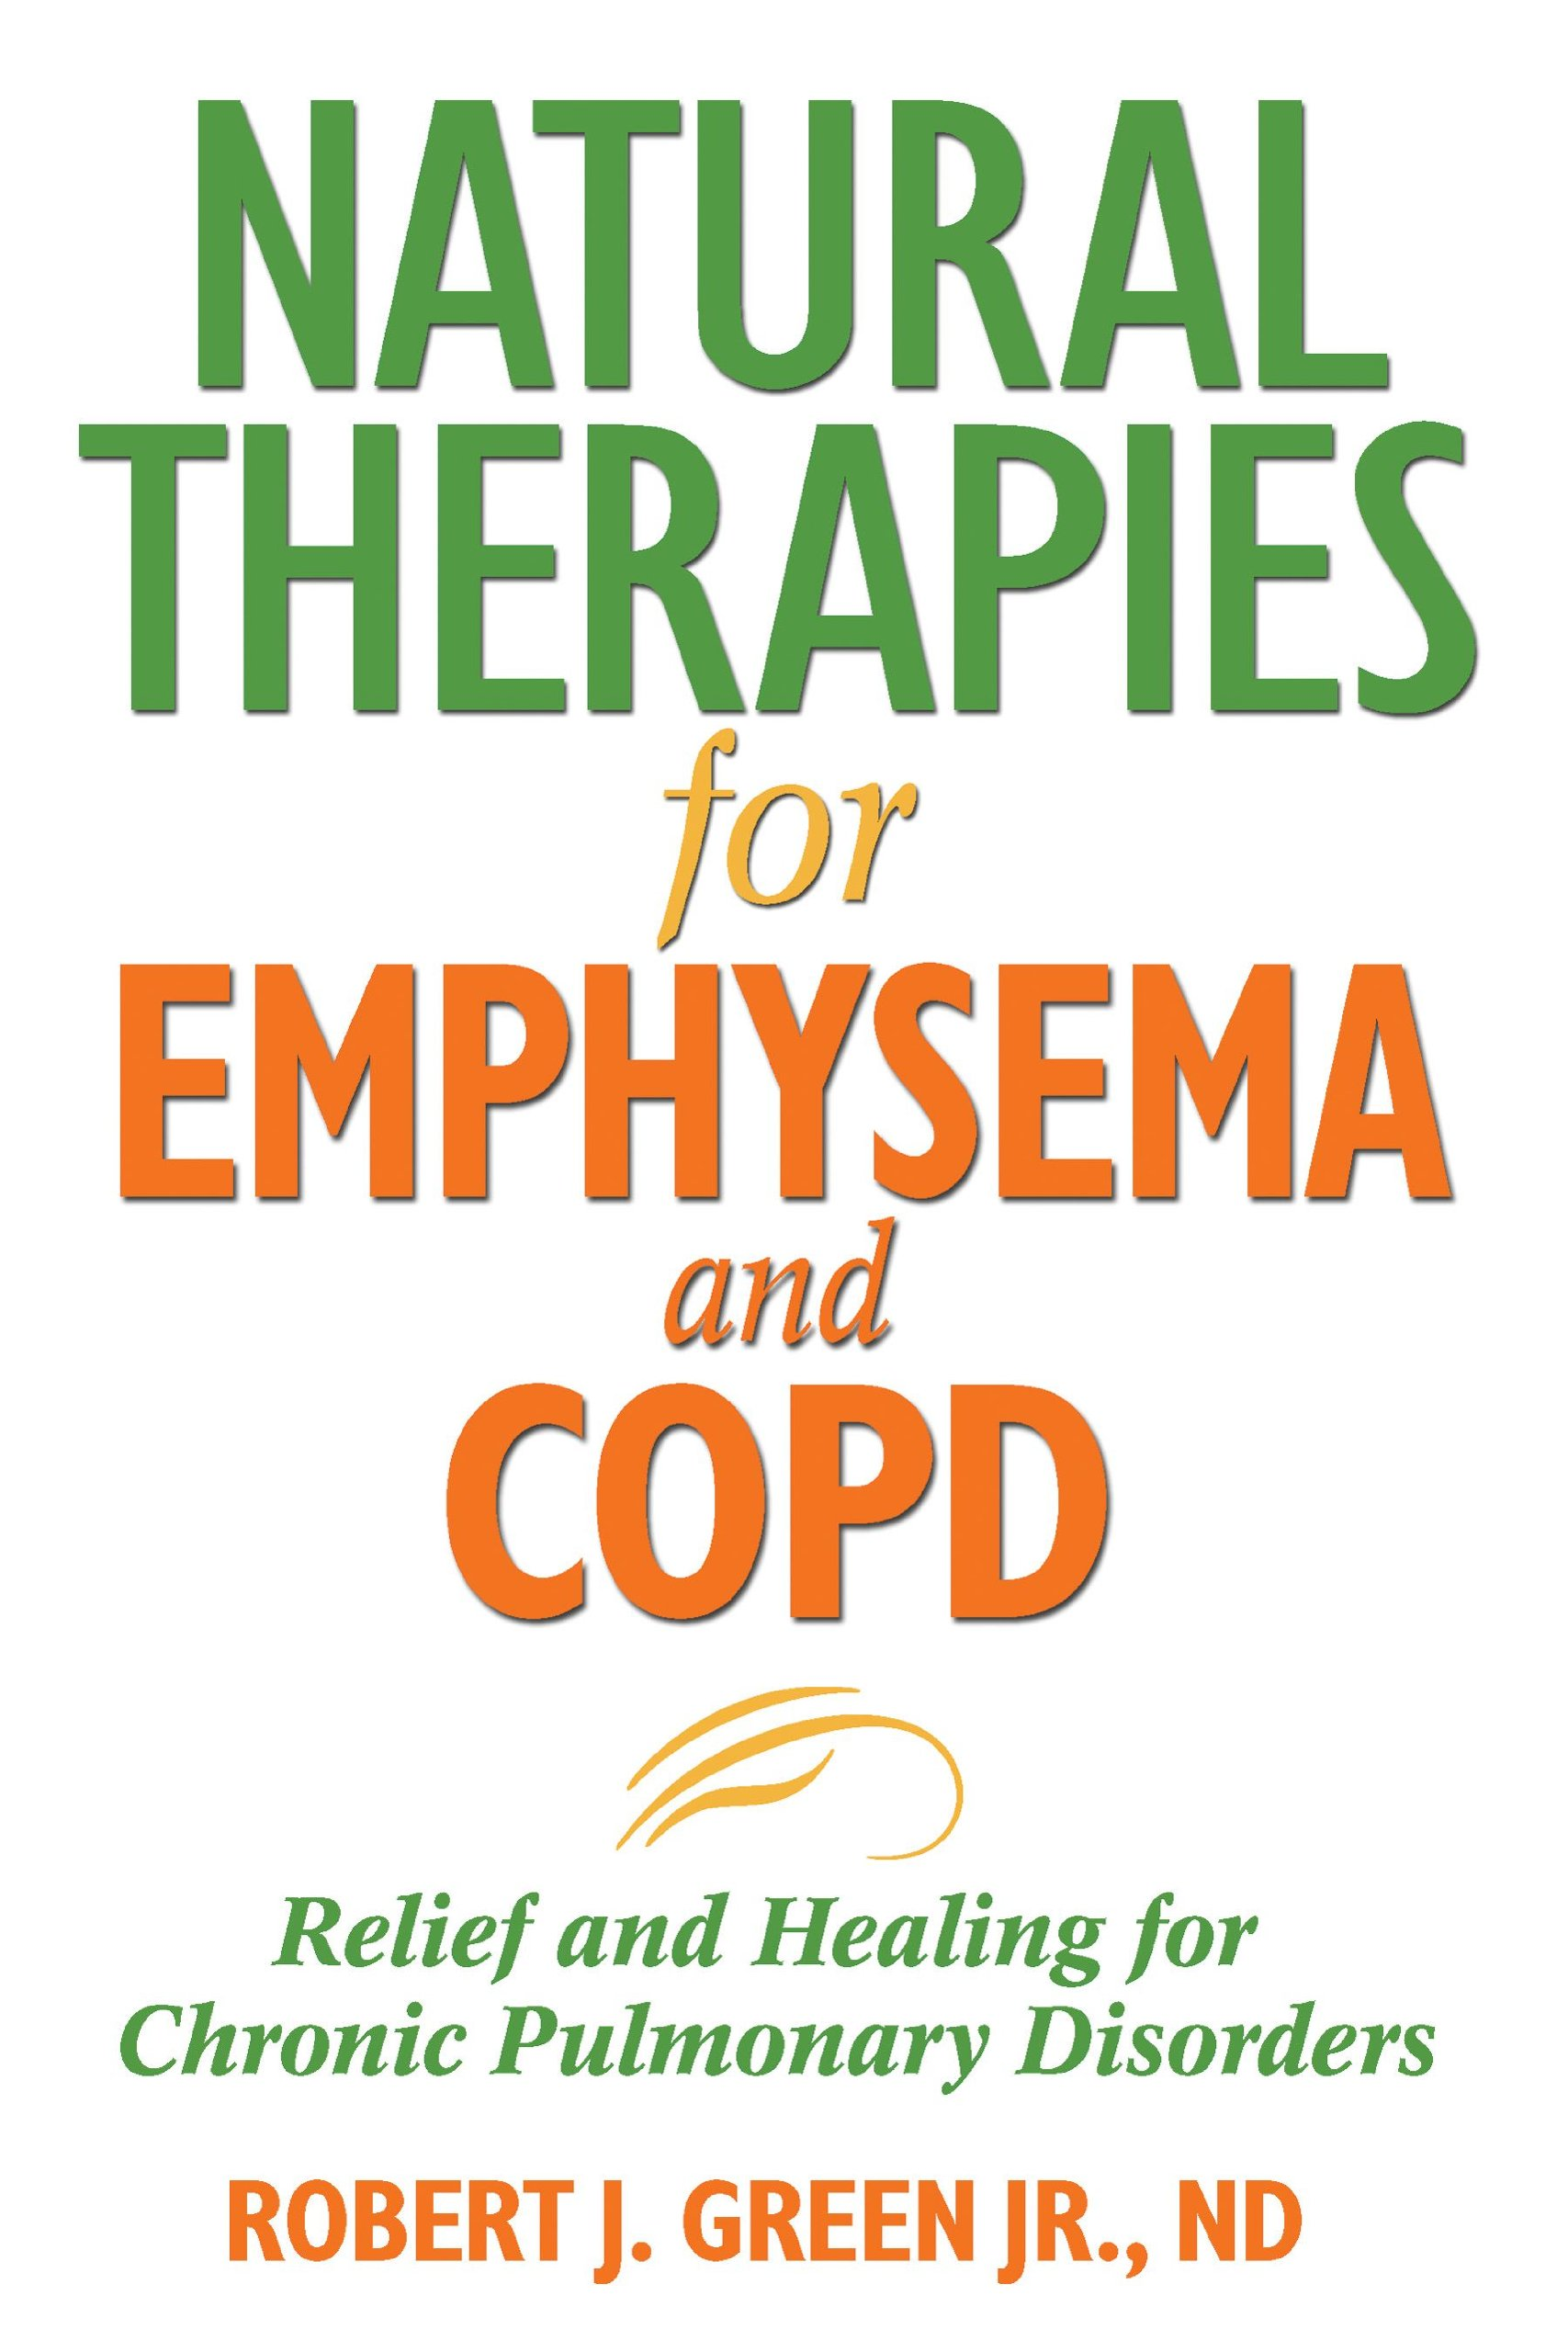 Natural Therapies for Emphysema and COPD: Relief and Healing